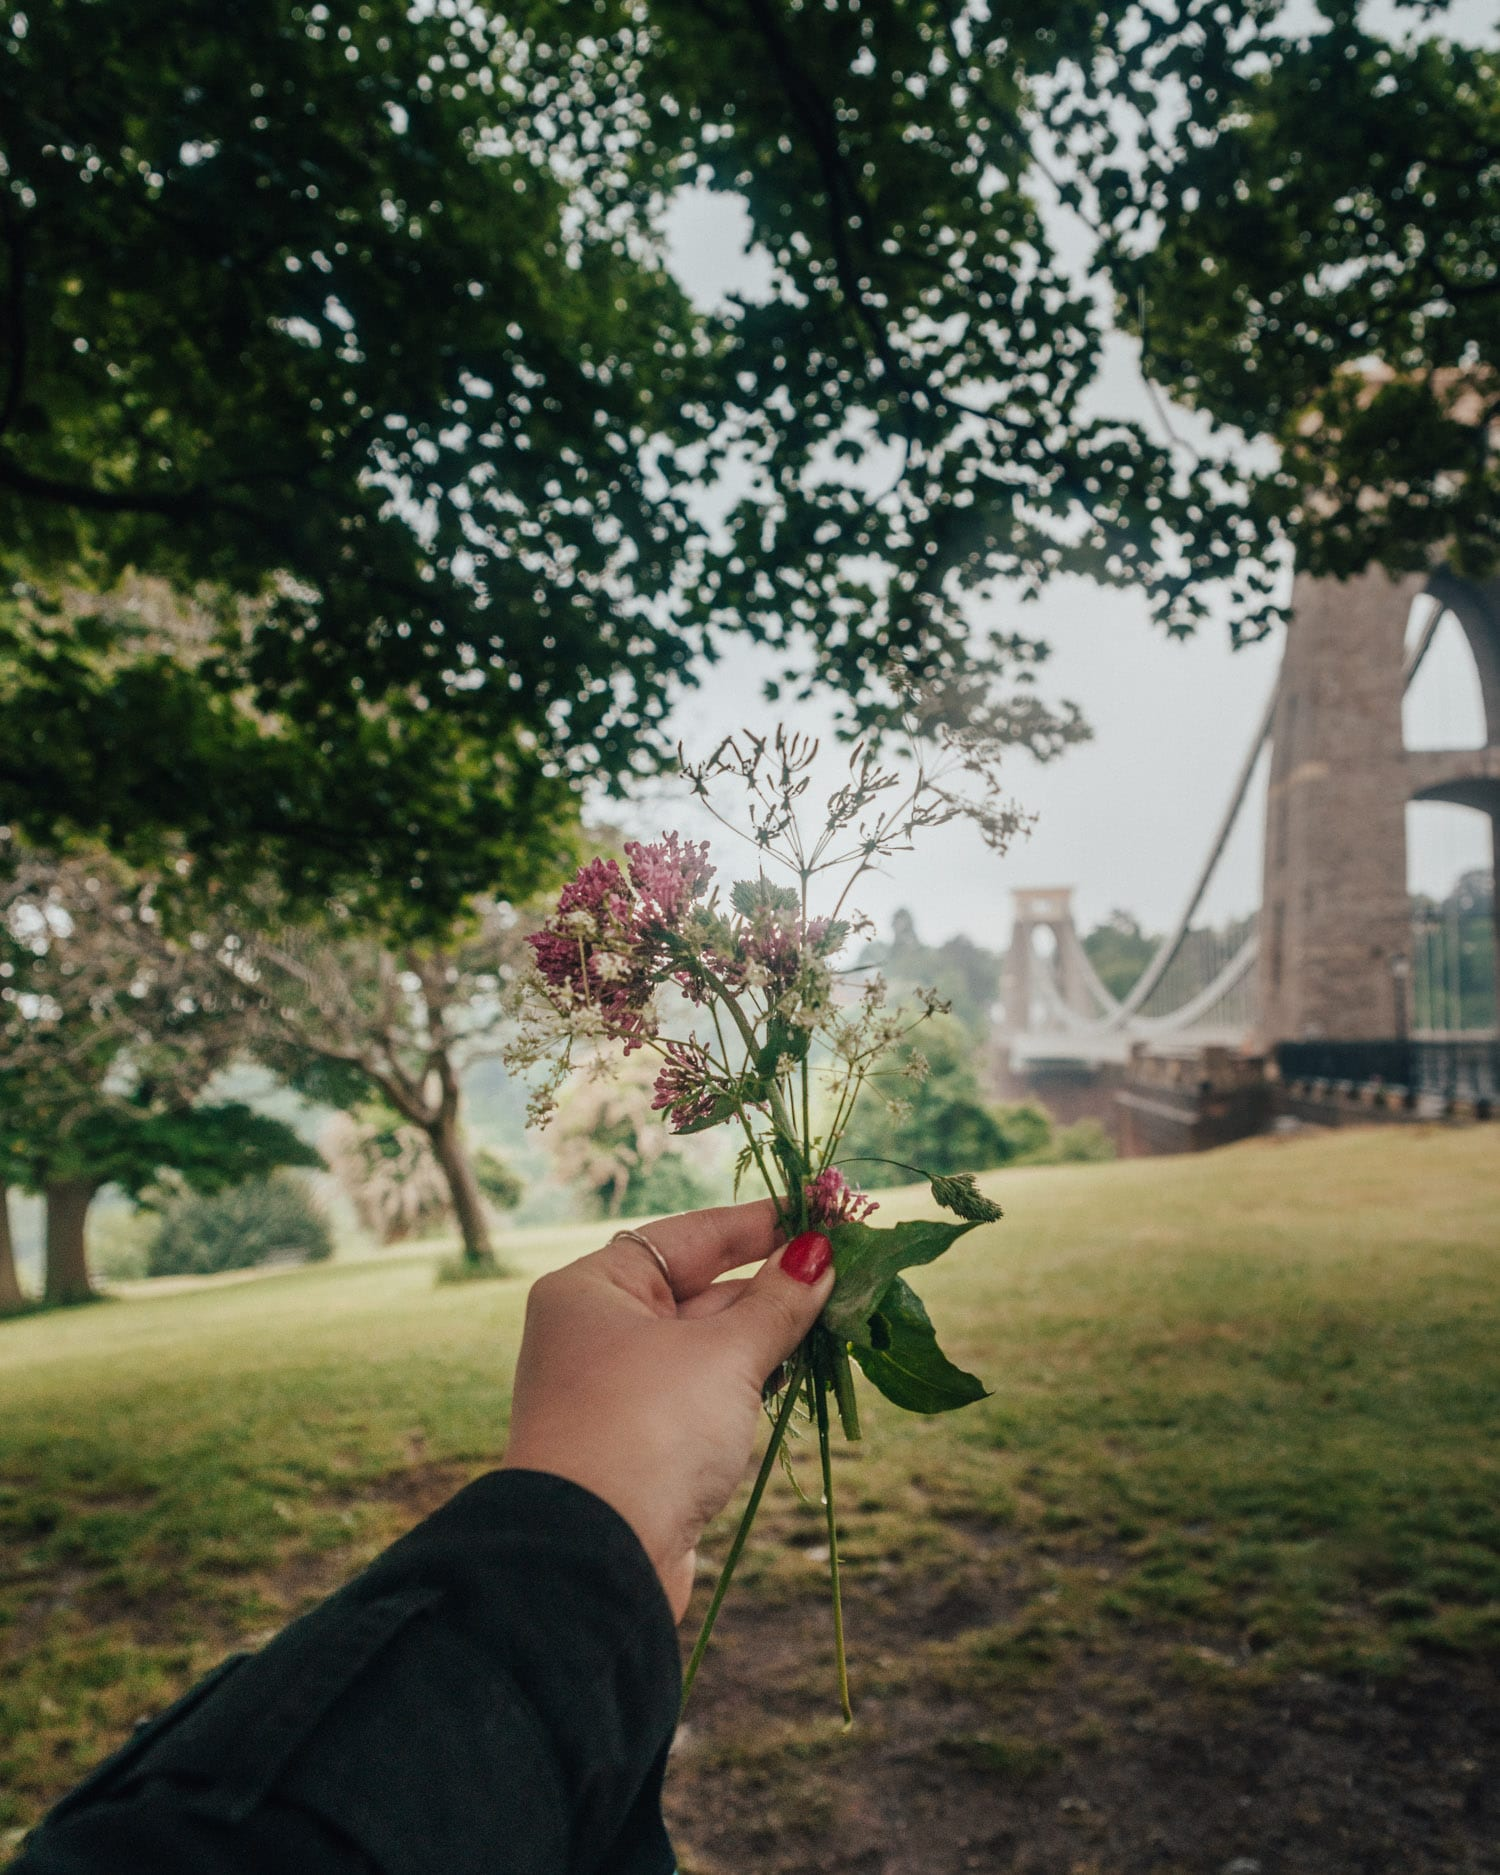 Clifton Suspension Bridge | Things to See in Bristol